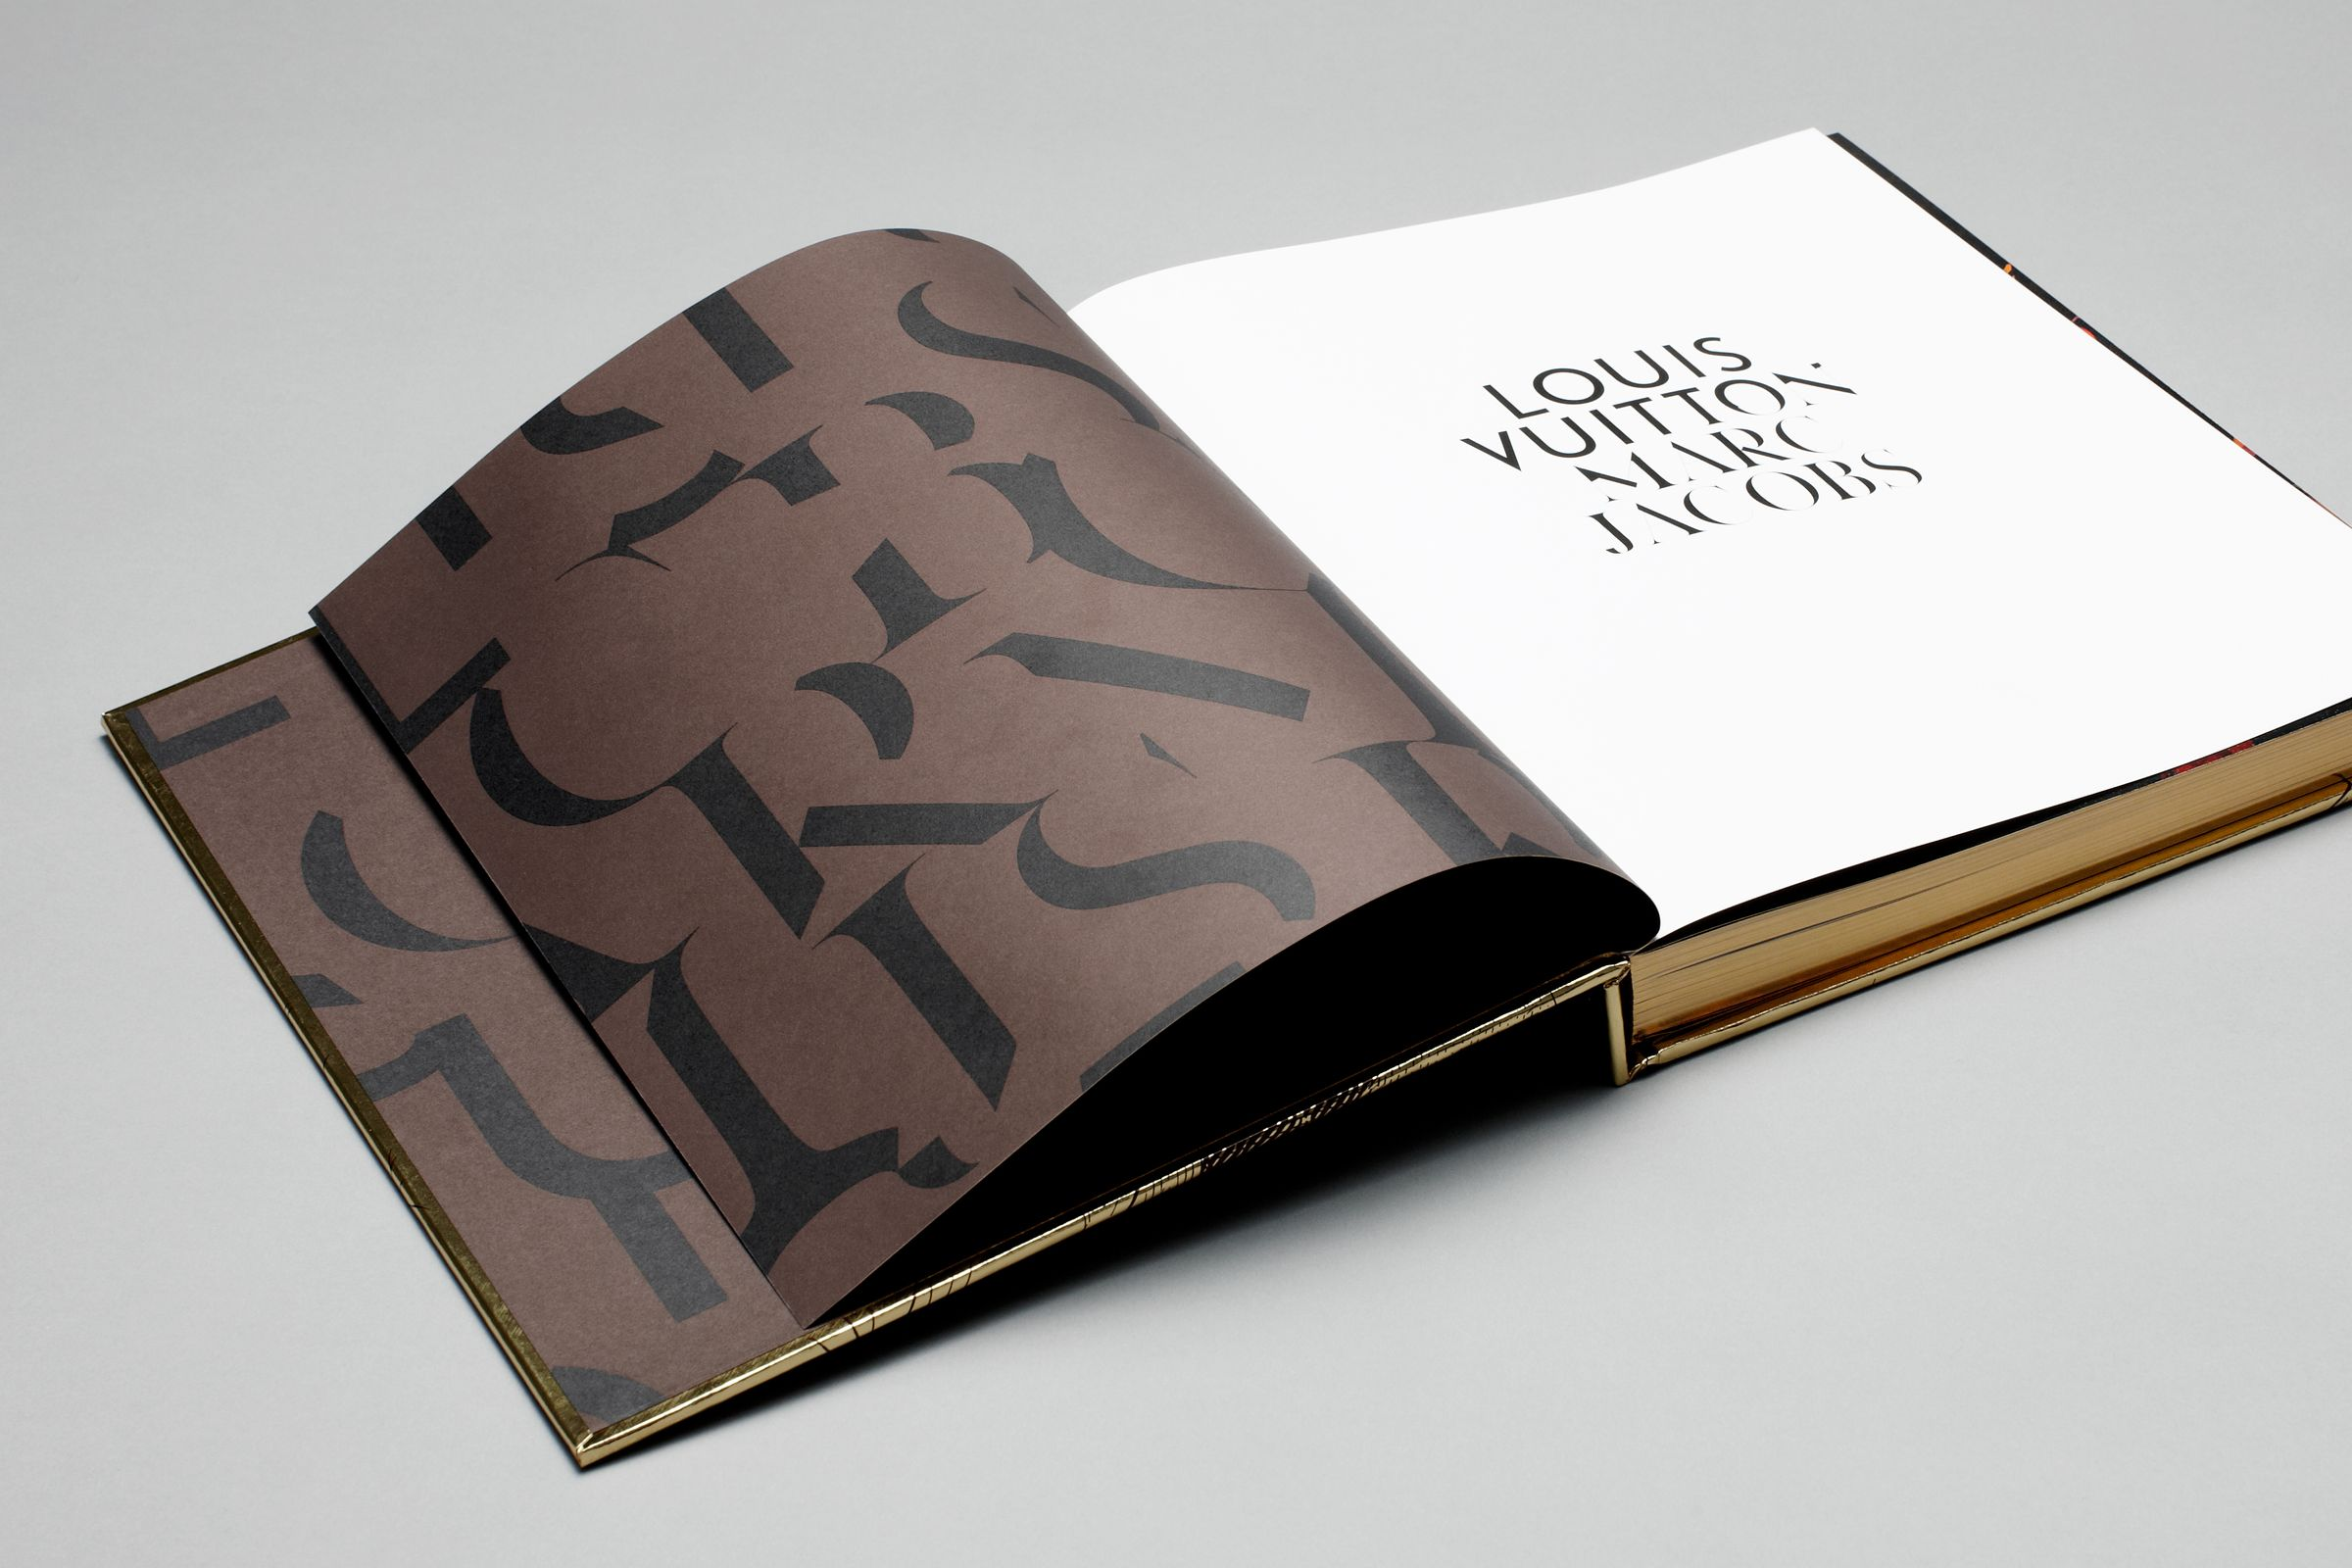 Louis Vuitton Marc Jacobs book with custom typography pattern